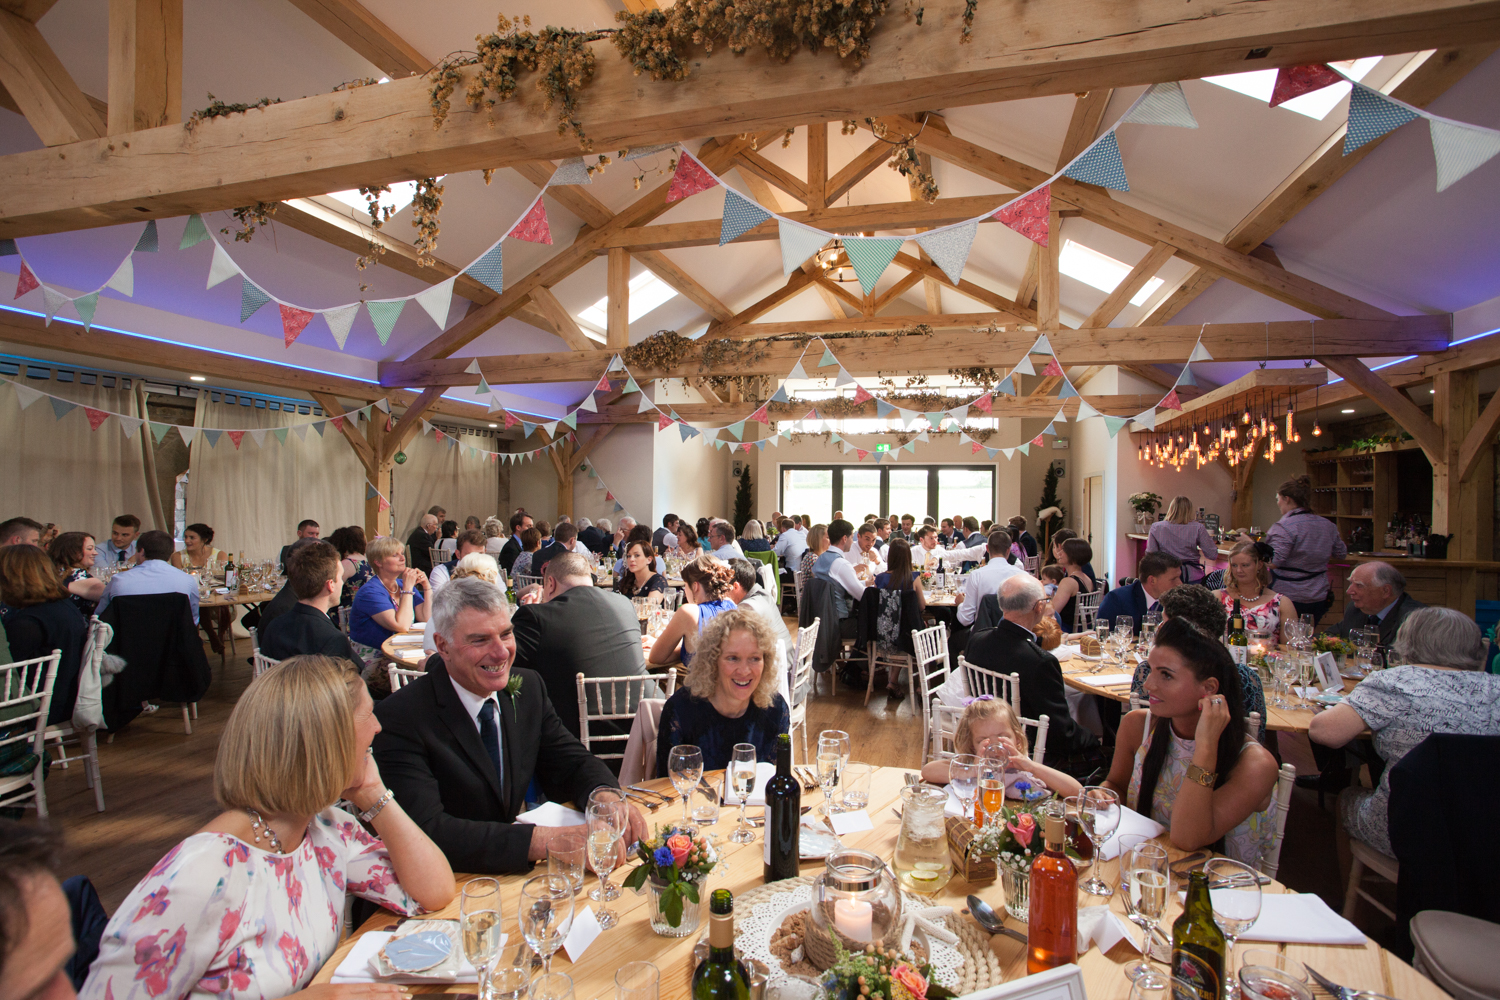 WEDDING_PICTORIAL_DOXFORD_BARNS_ALNWICK_BERWICK_SEASIDE_BUNTING_FARM-0836.jpg